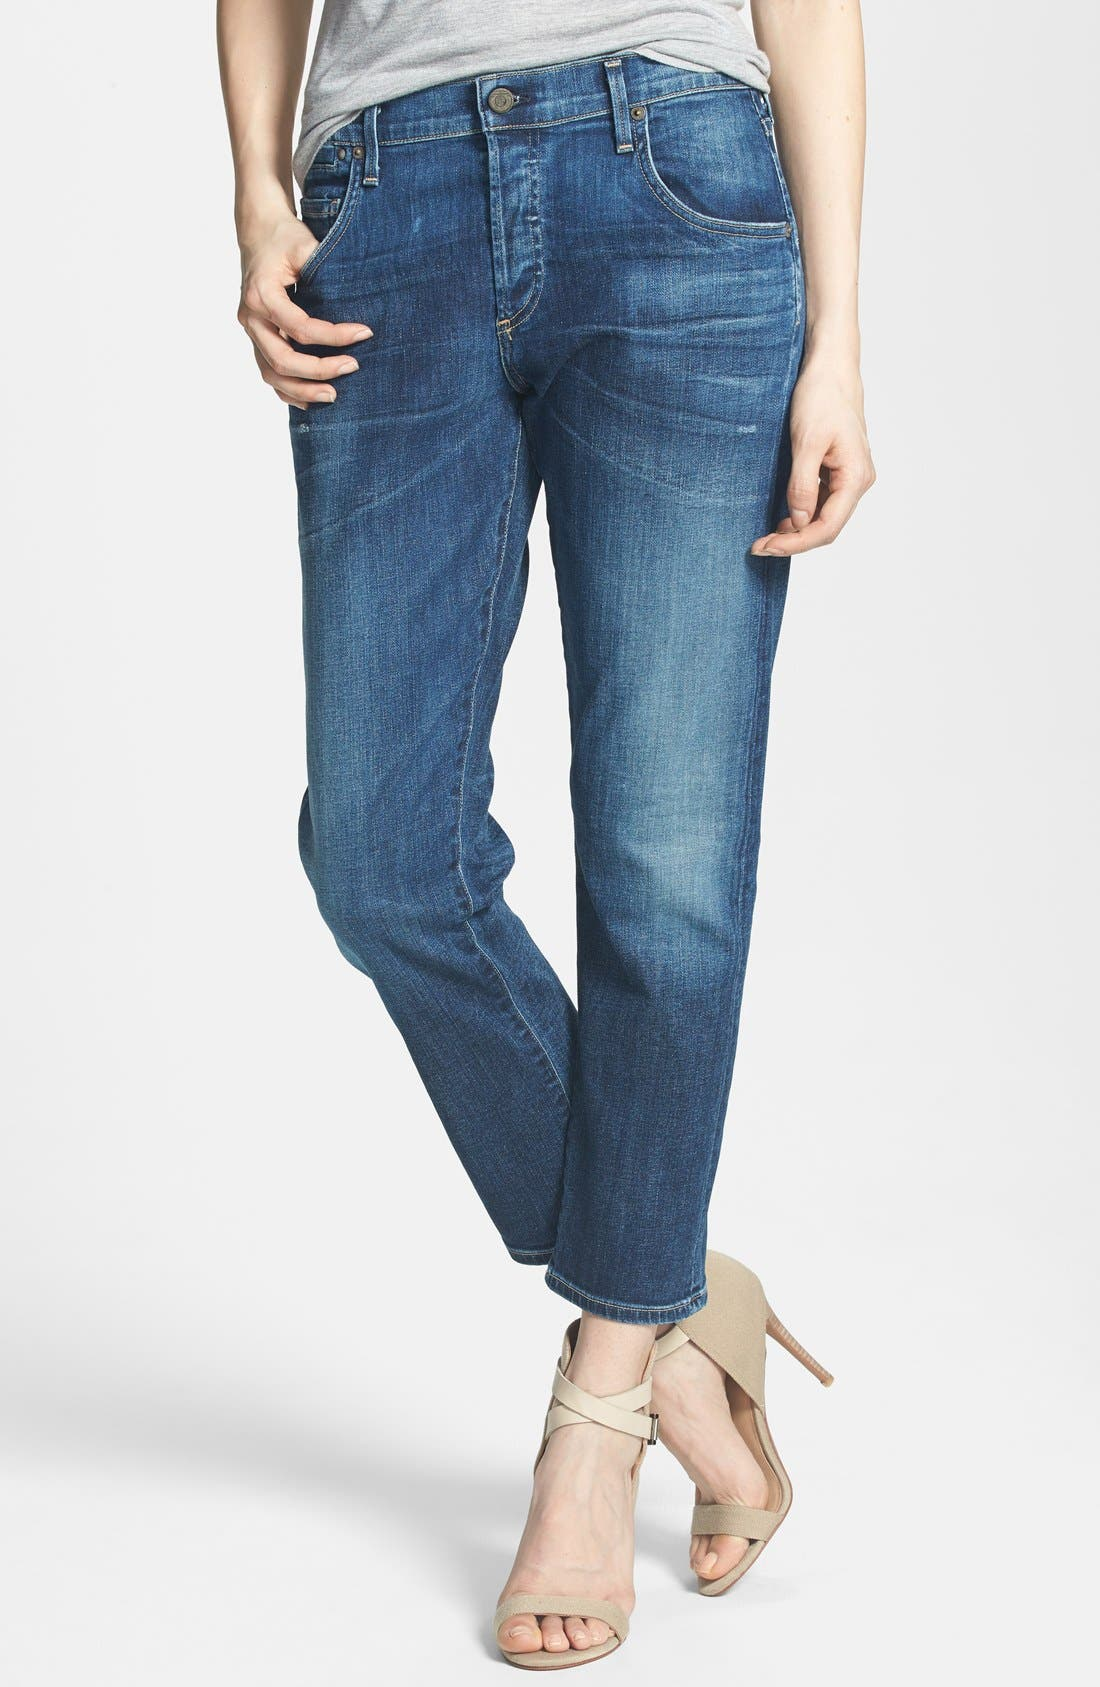 Emerson Slim Boyfriend Jeans,                         Main,                         color, BLUE RIDGE